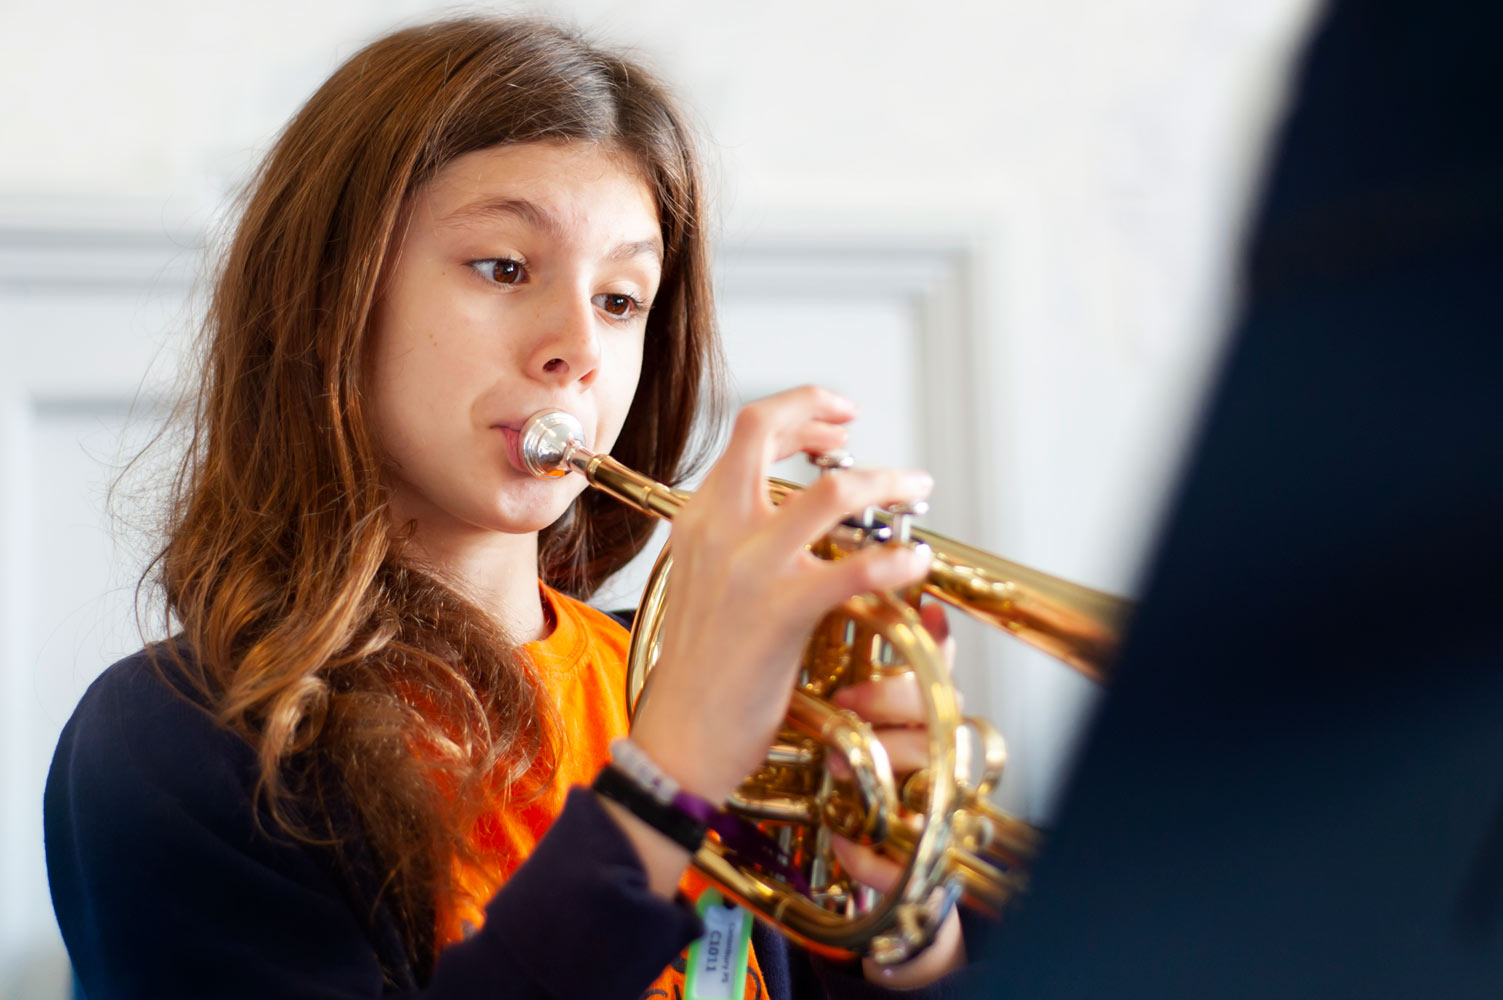 School pupil playing the trumpet